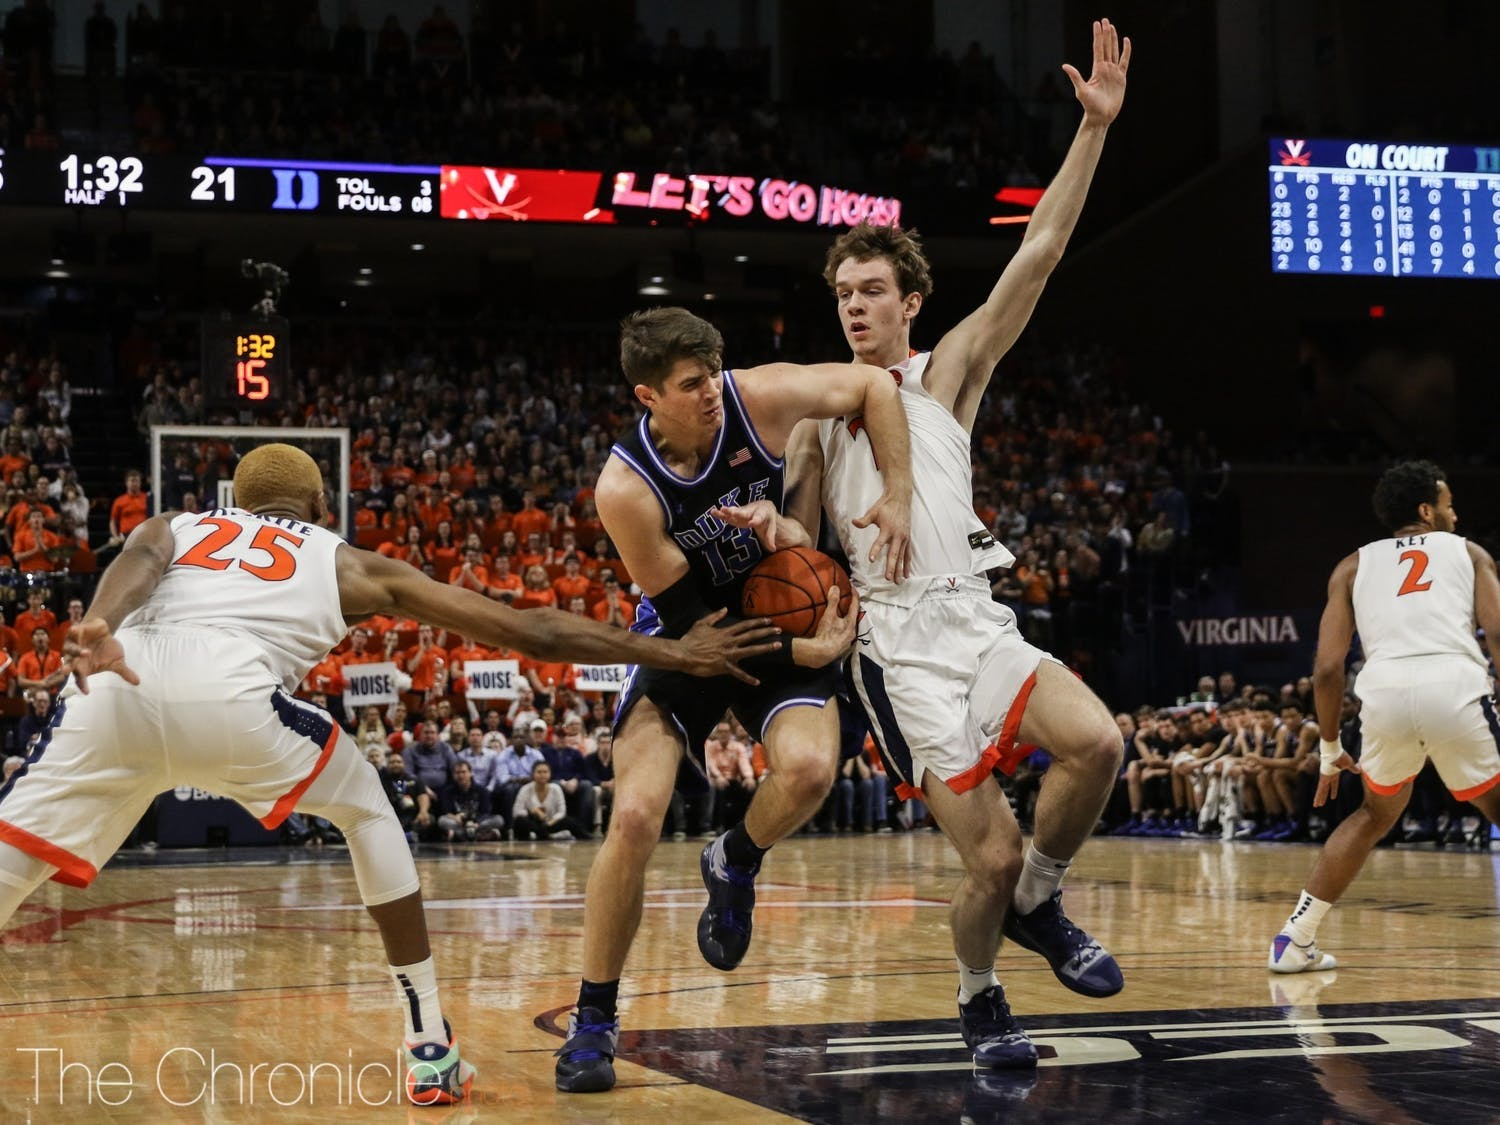 When Duke plays Virginia, the stakes are typically high. Three of the past four meetings have resulted in the winning team only escaping with a two-point lead.